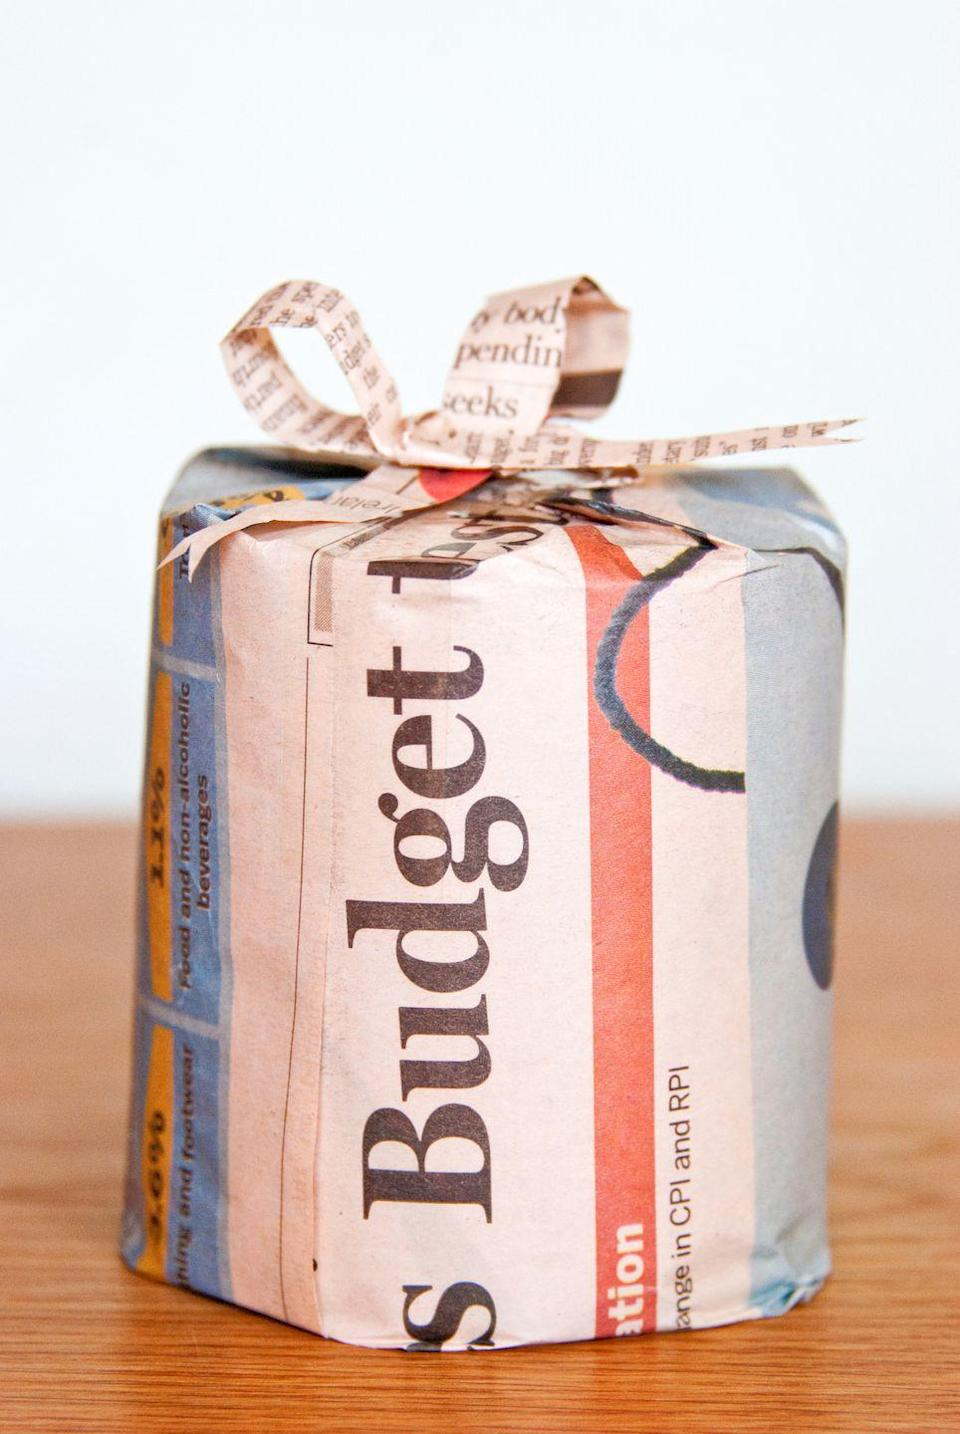 <p>Get really creative with the next birthday present by wrapping it in newspaper from the day they were born (you can print out a copy from the archives!). </p>